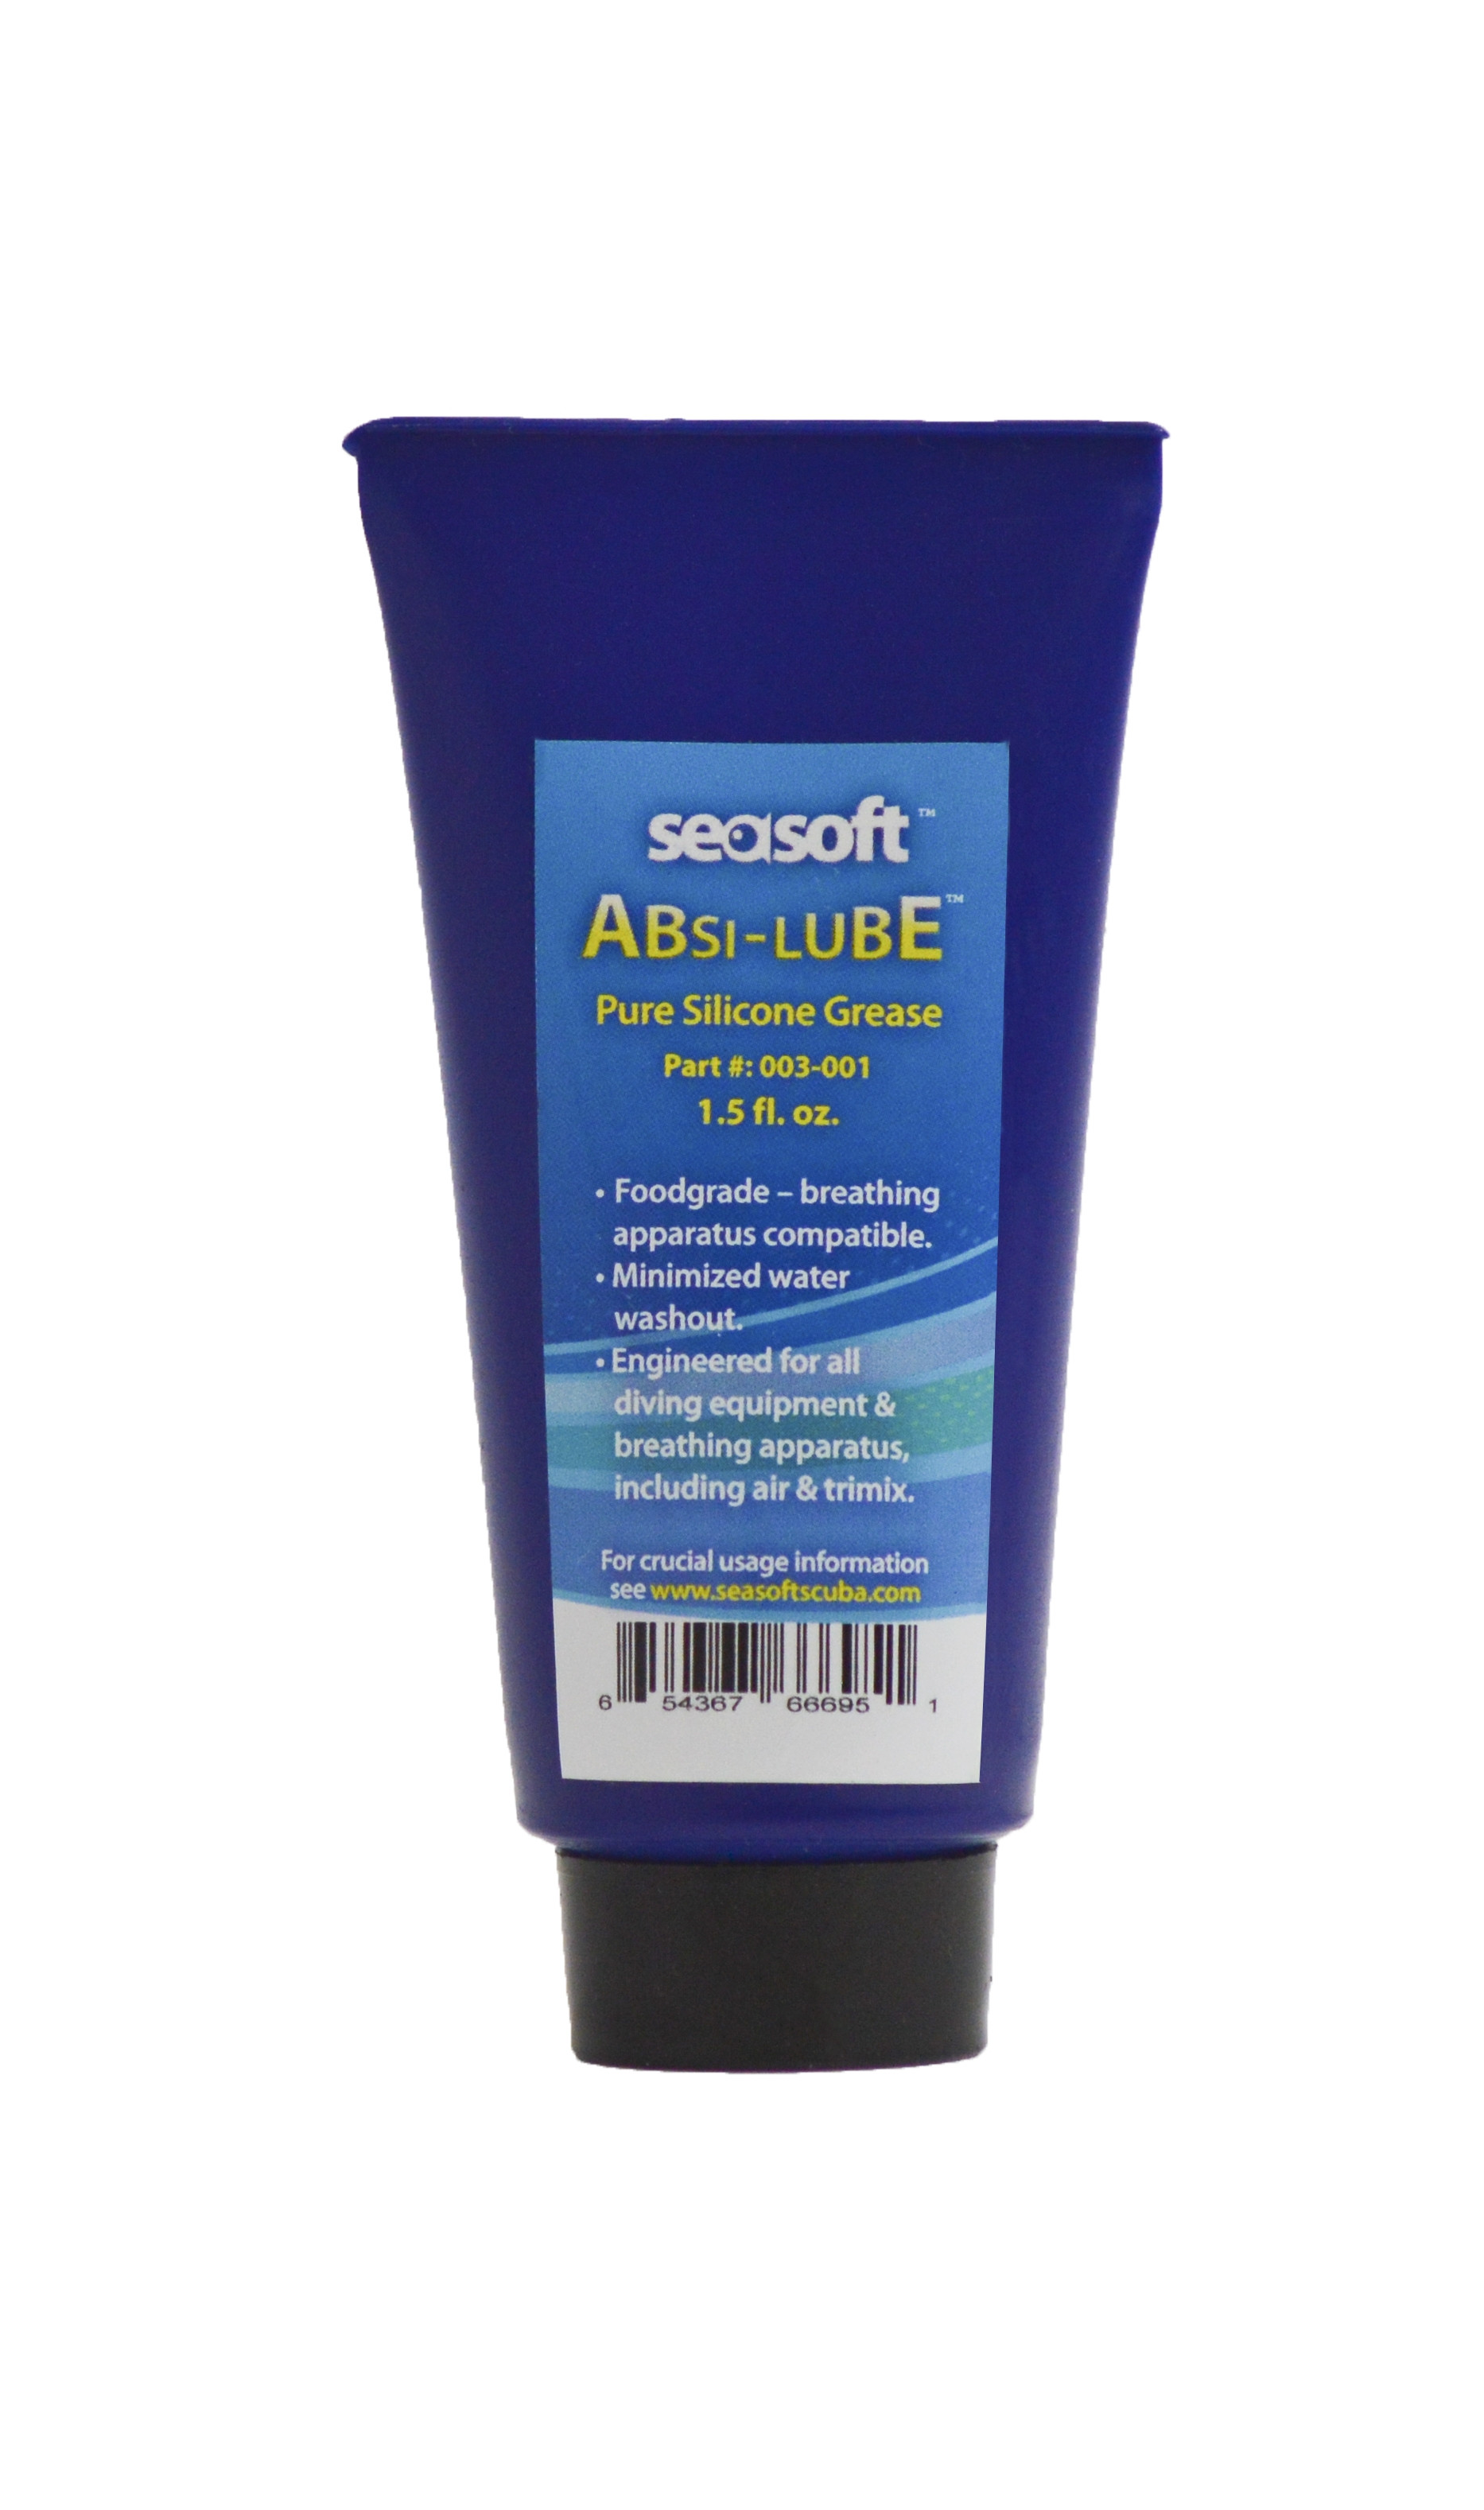 SEASOFT's ABSI-LUBE™ Pure Silicone Grease